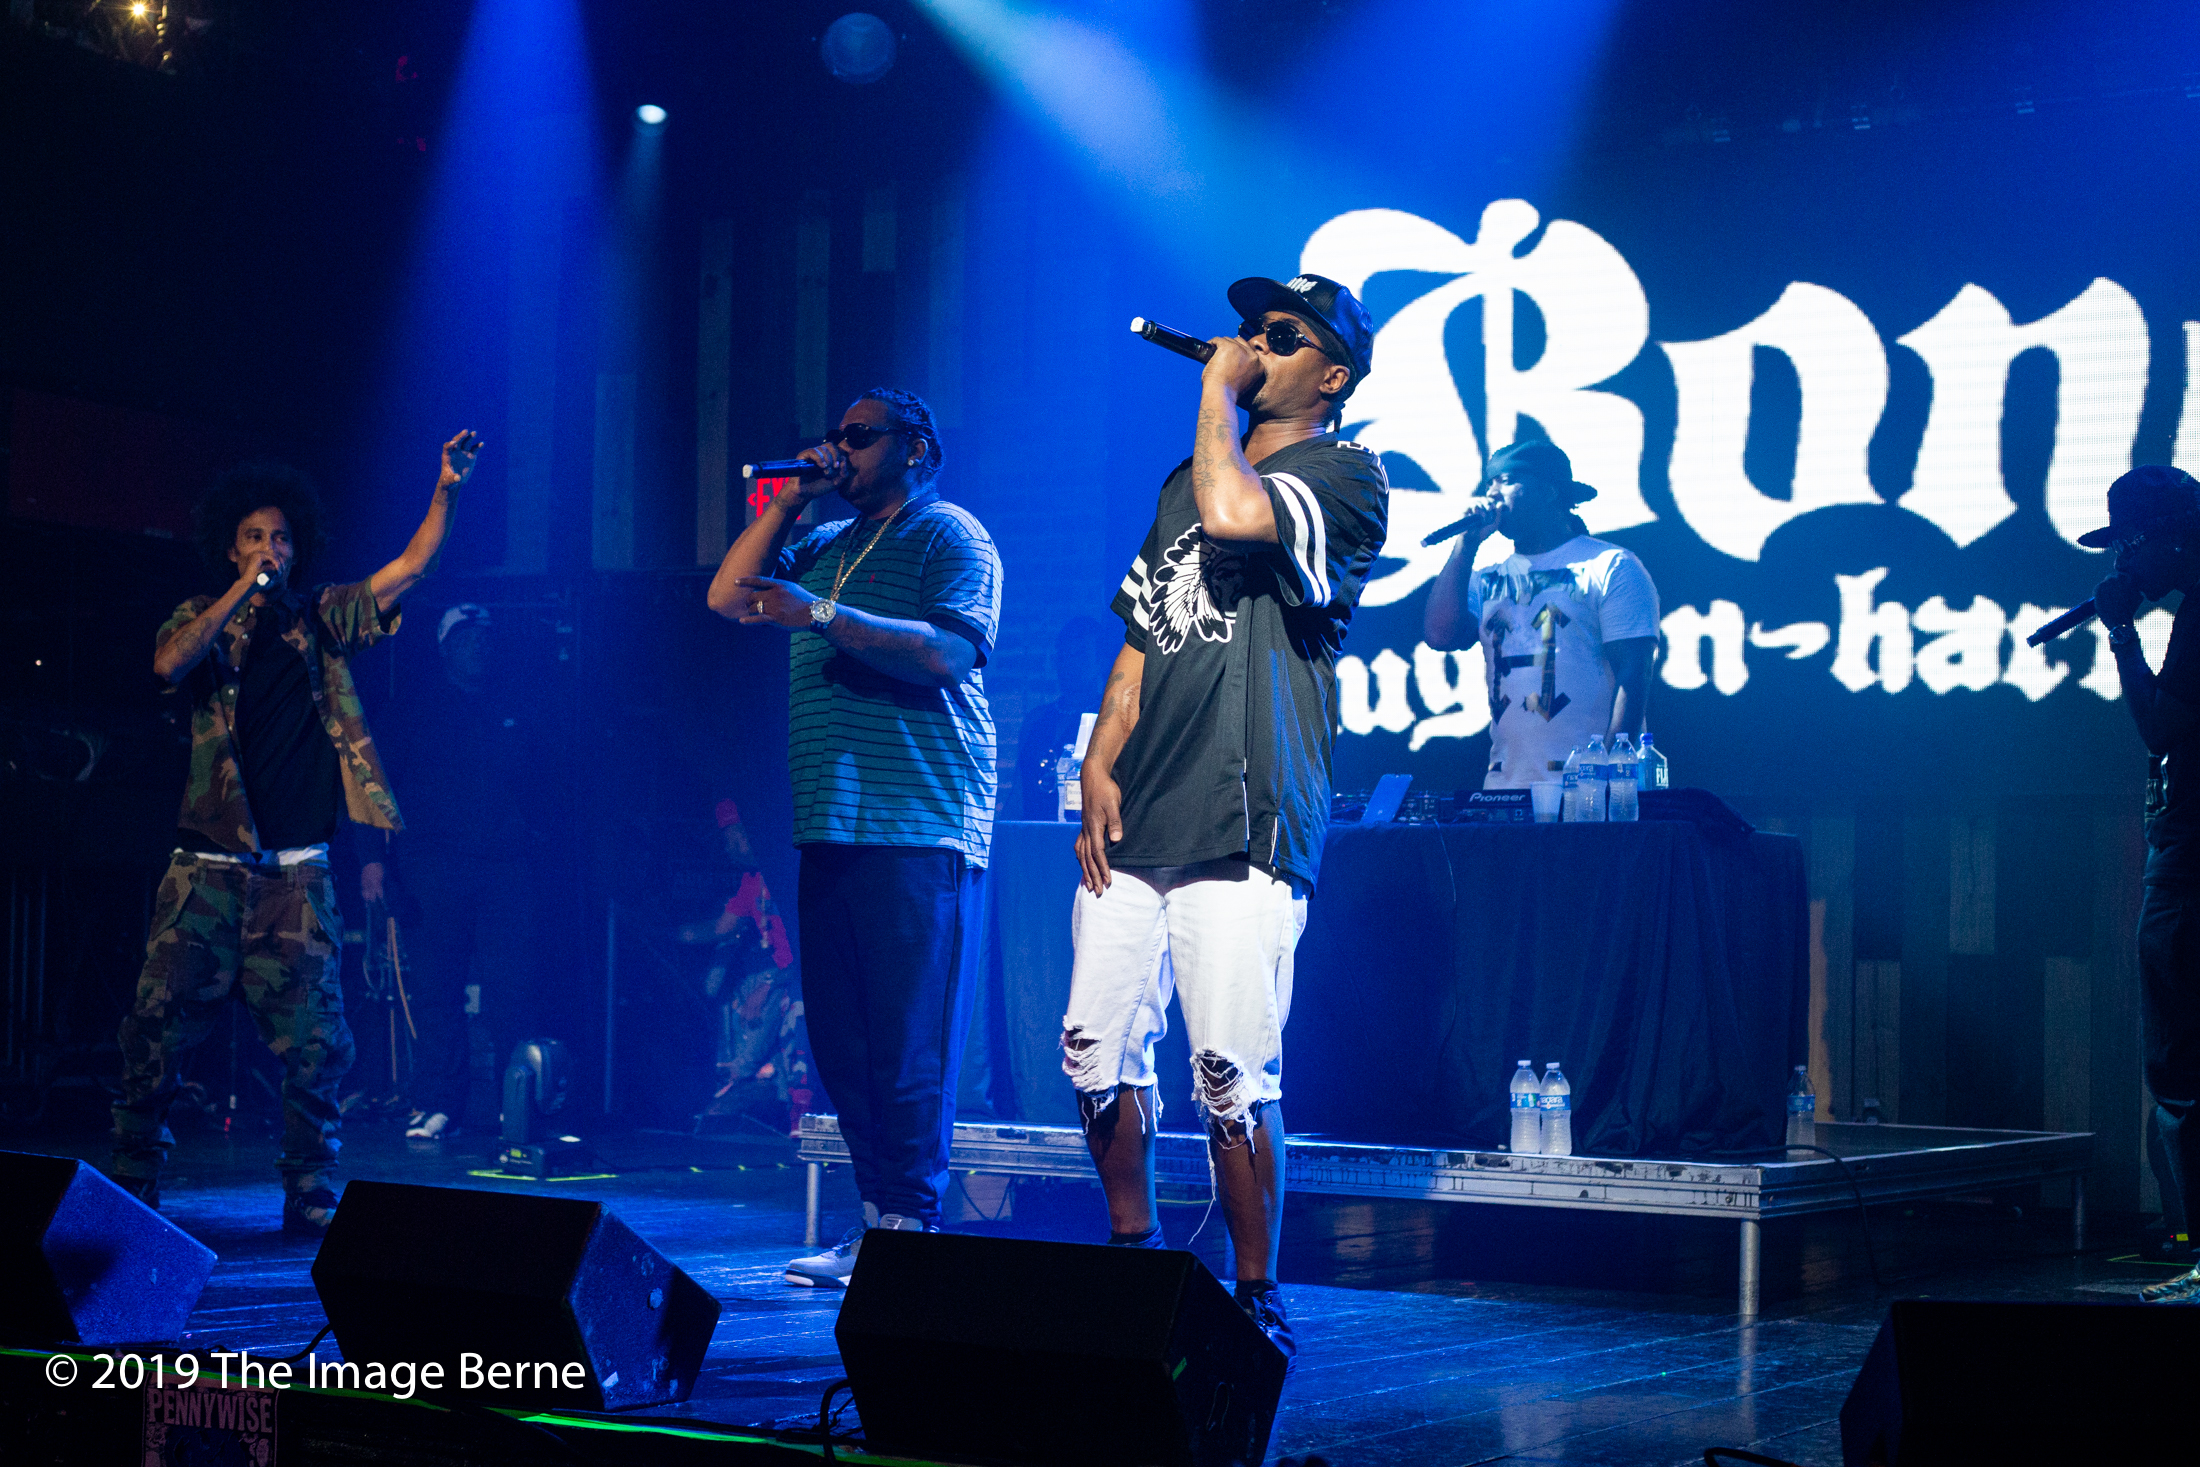 Krayzie Bone, Wish Bone, Flesh-N-Bone, Layzie Bone, and Bizzy Bone-098.jpg